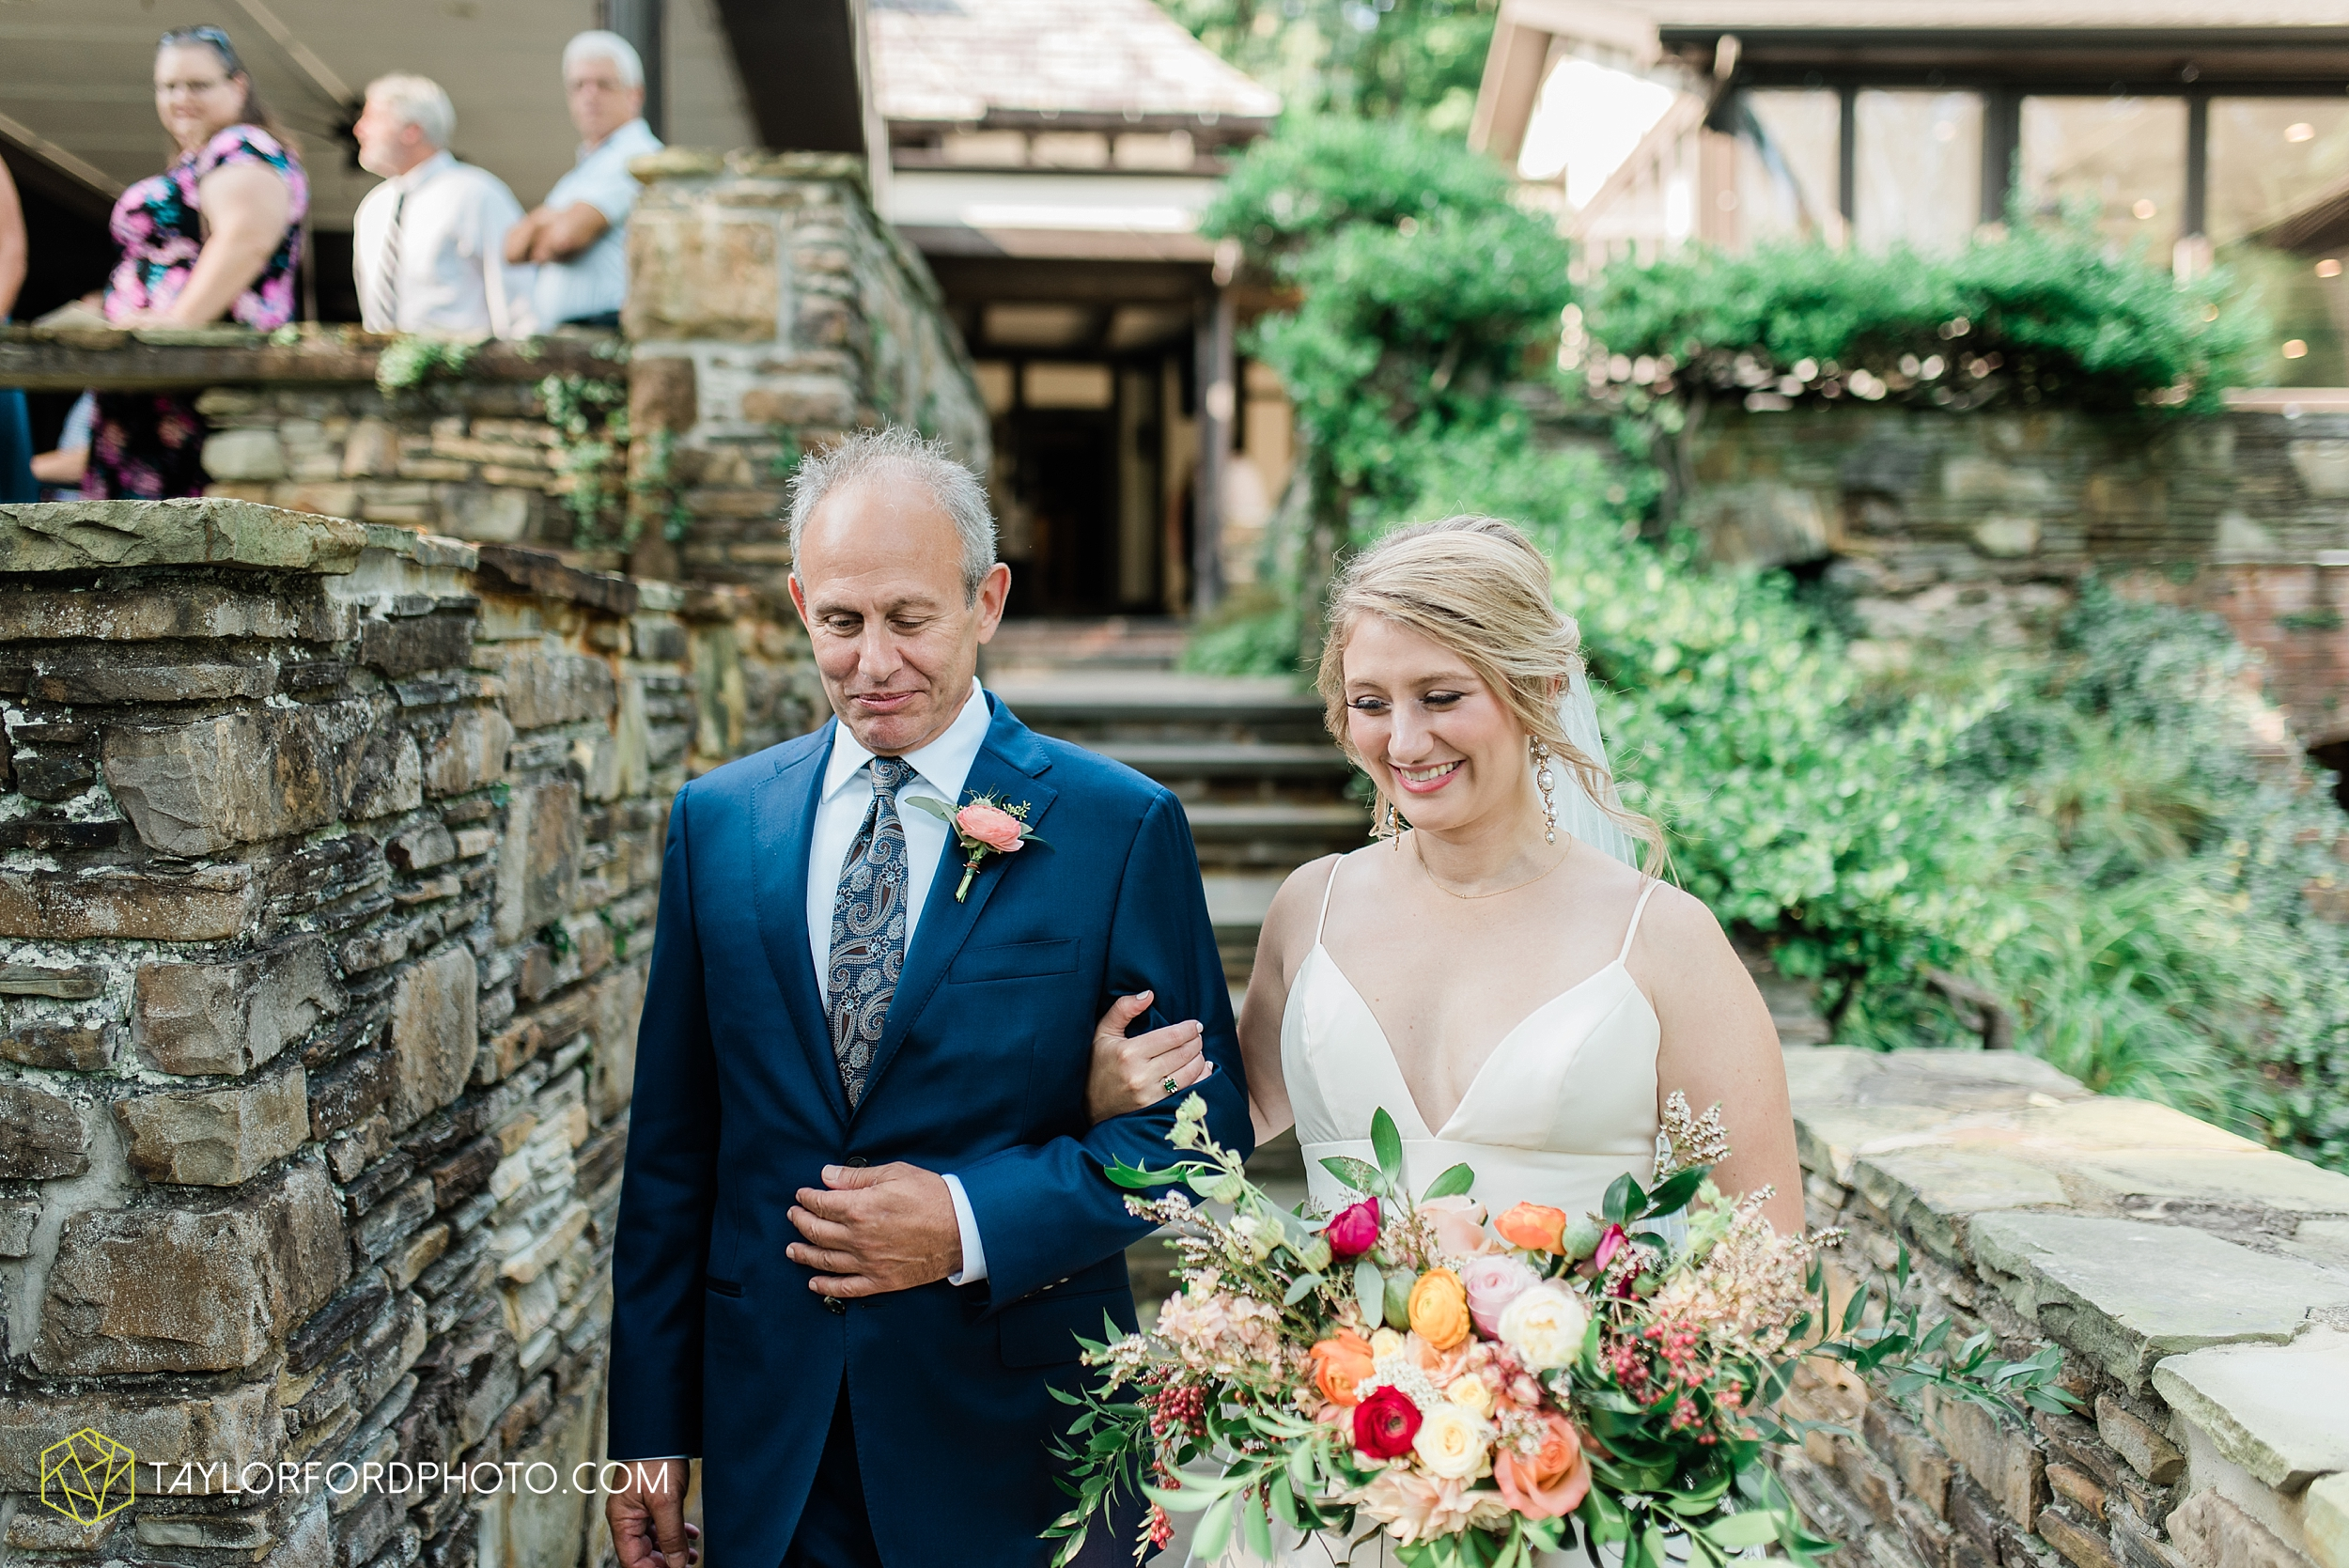 margot-may-evan-kohler-club-at-hillbrook-cleveland-chagrin-falls-outdoor-wedding-bhldn-gardenview-flowers-toledo-photographer-taylor-ford-photographer_9577.jpg